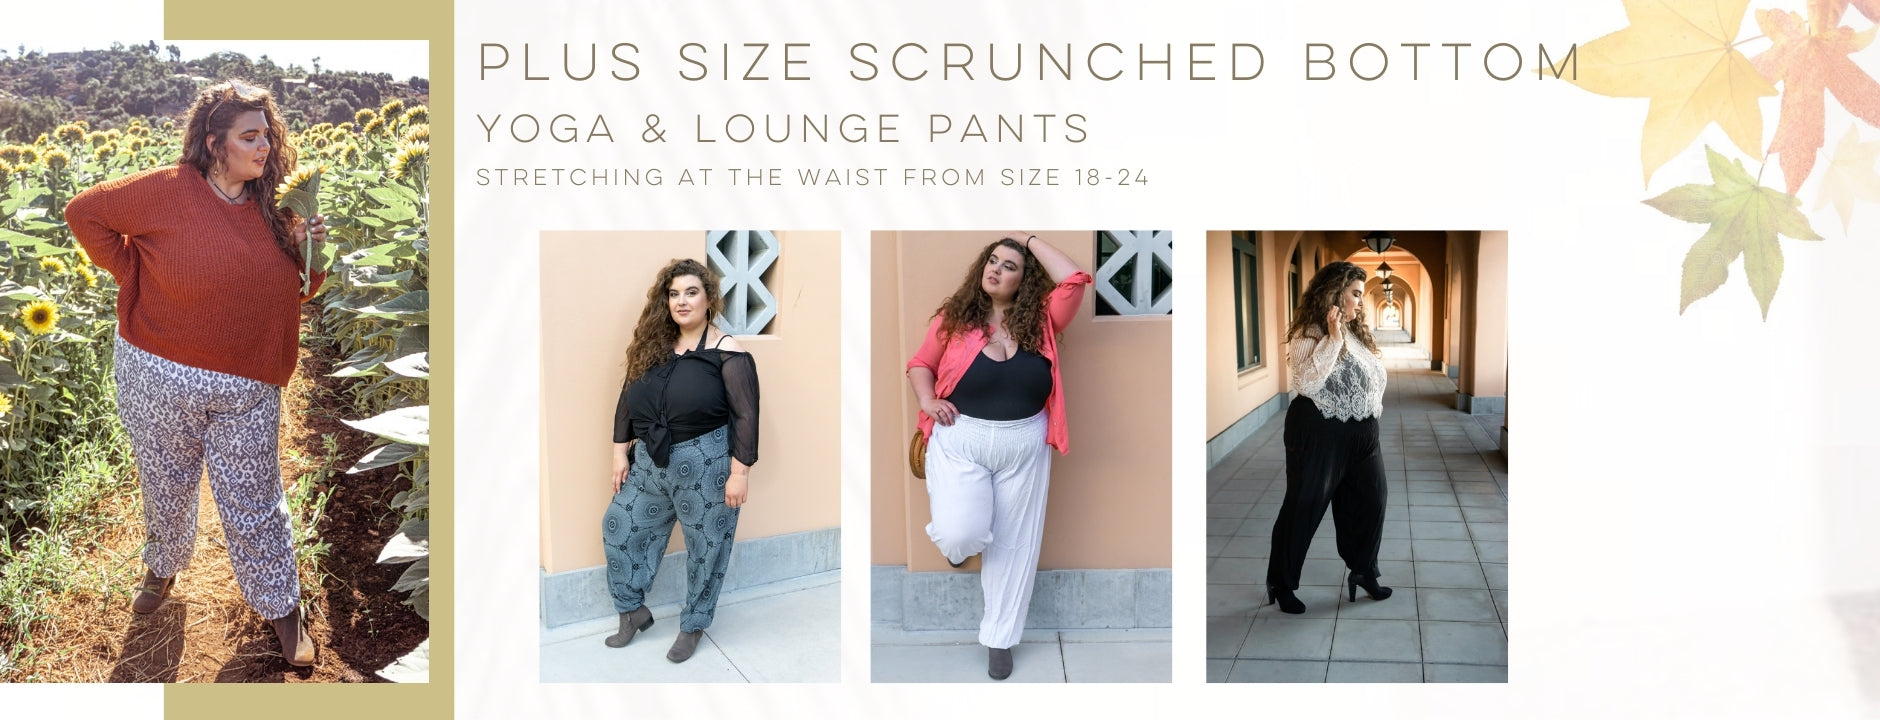 PIYOGA - Plus Size Scrunched Bottom Yoga Pants Size 18-24 - Yoga, Lounge, Beach, Autumn, Surfwear, Work, Loose, Flowy, Lightweight, Comfy, Soft, Drawstring, Rayon, Handmade, Pockets